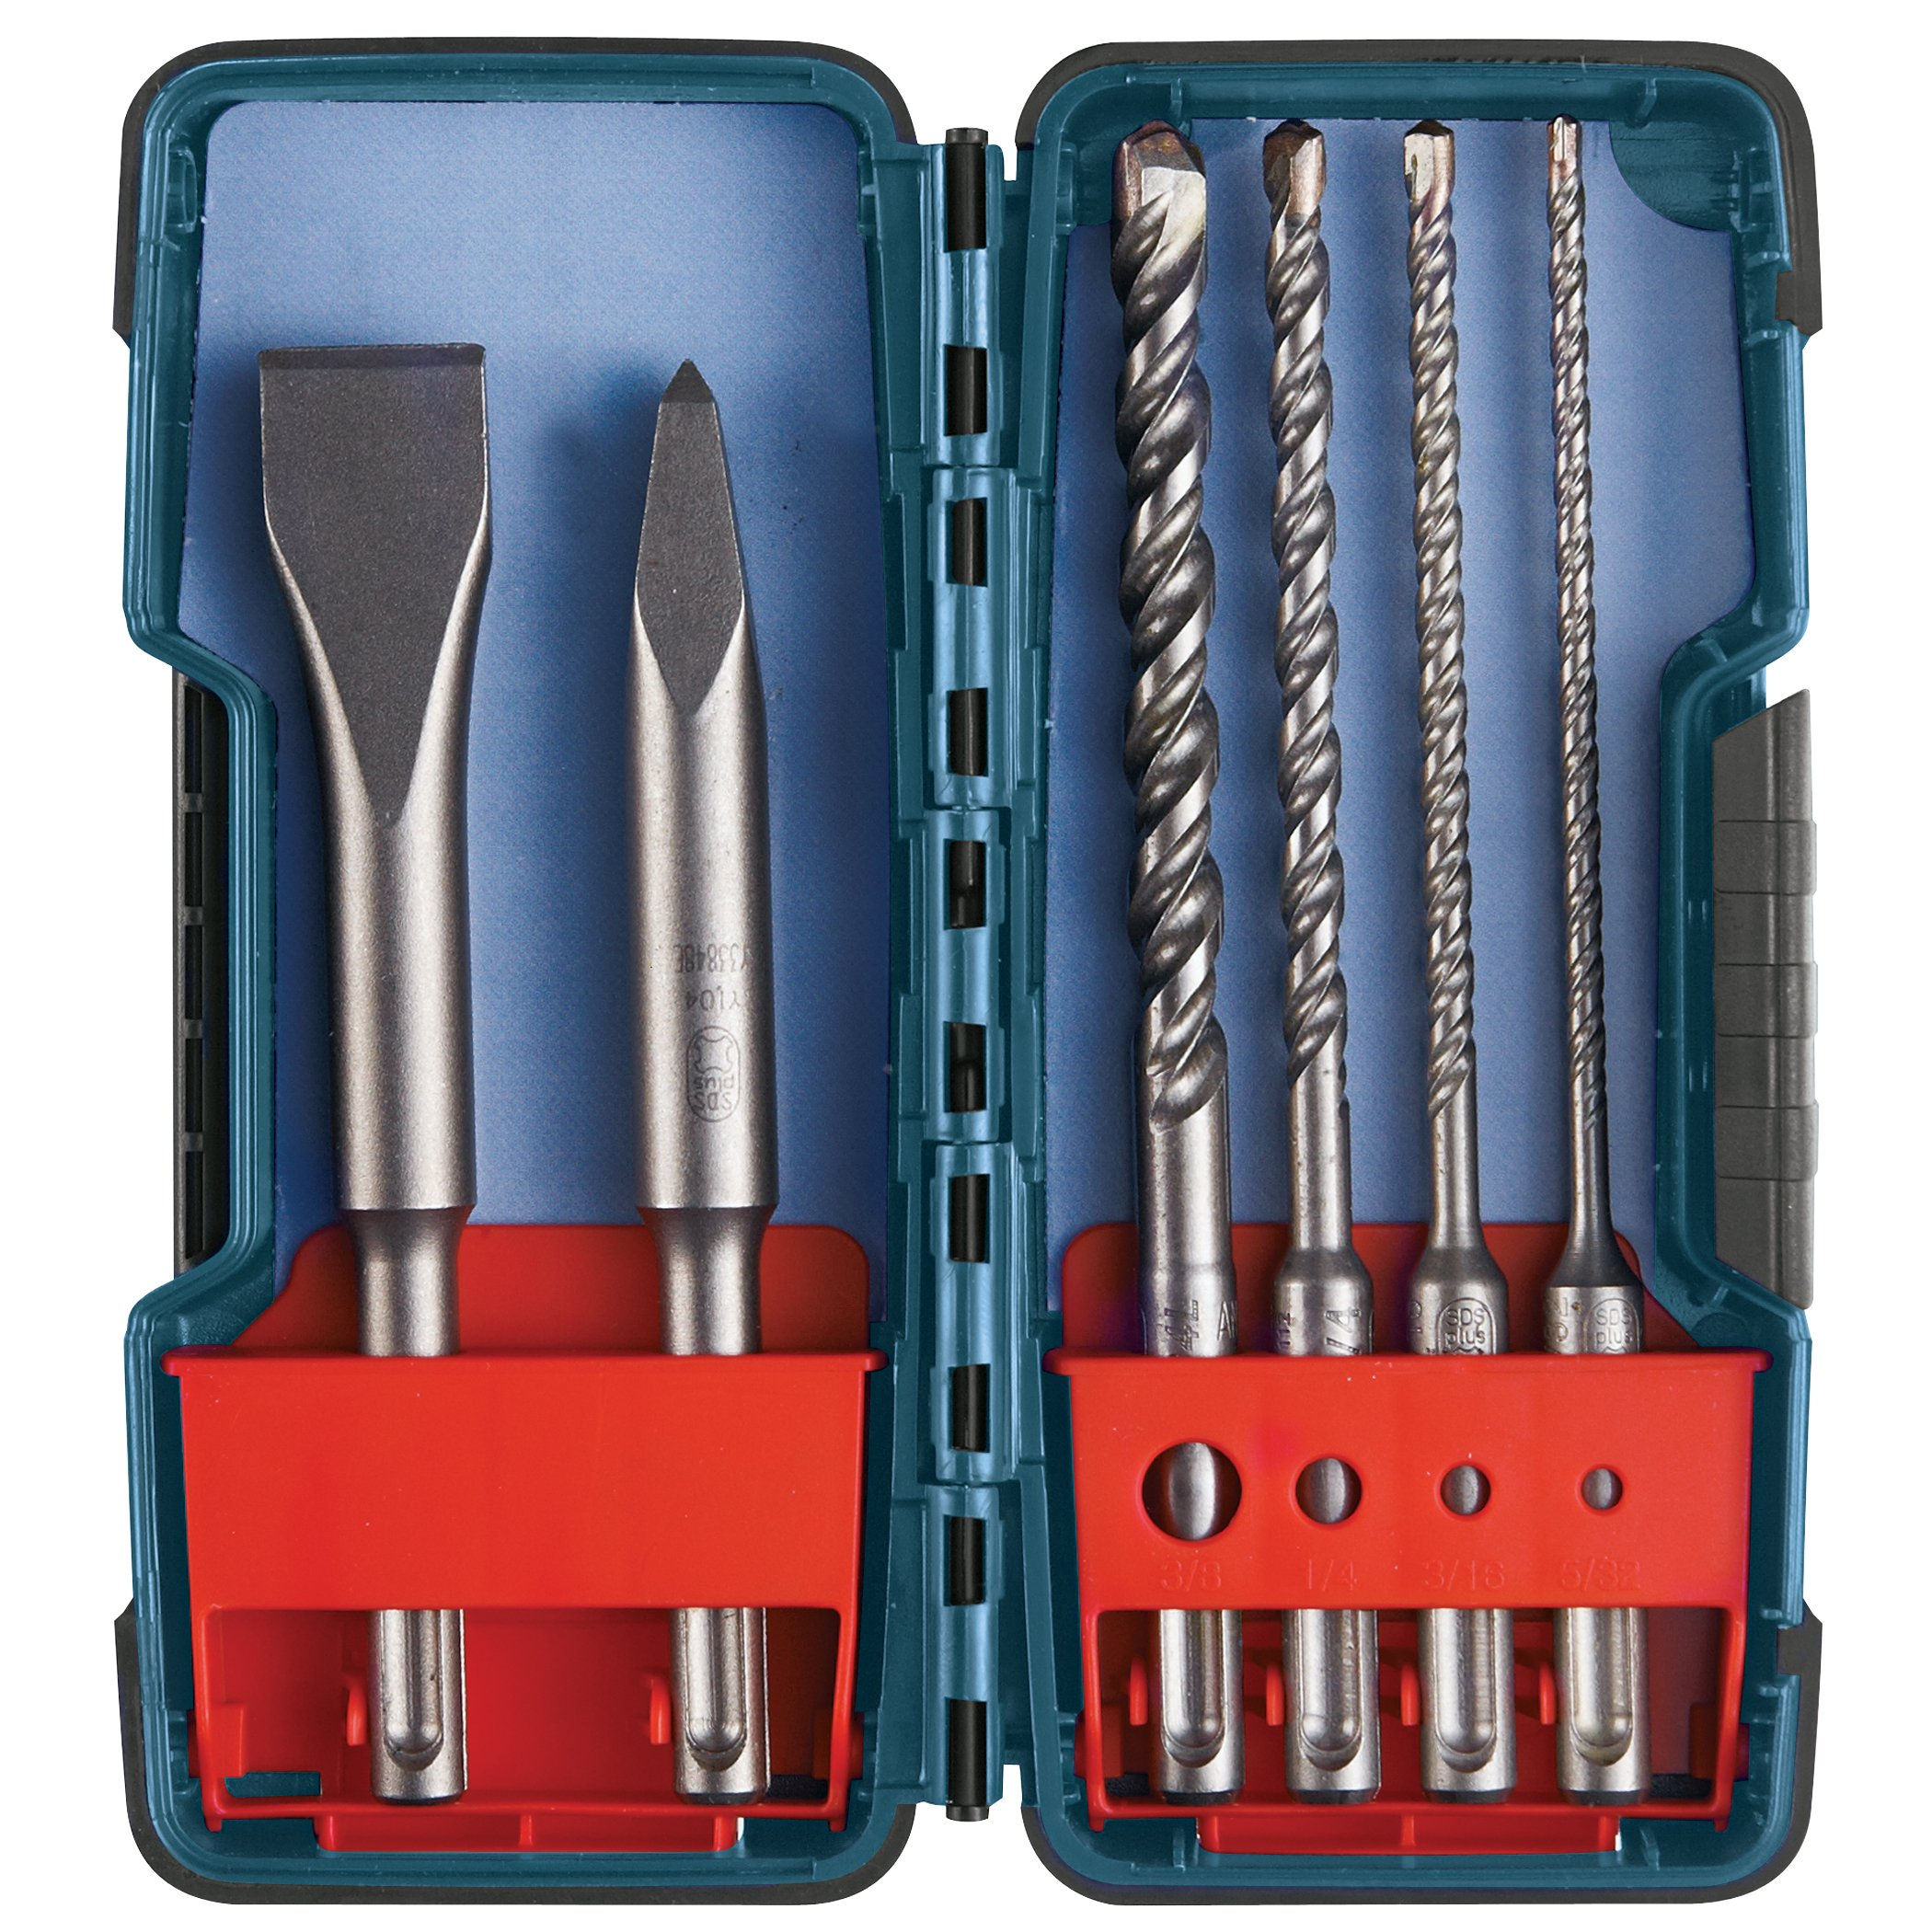 Bosch 6 Piece SDS-plus Masonry Trade Bit Set, Chisels and Carbide, HCST006